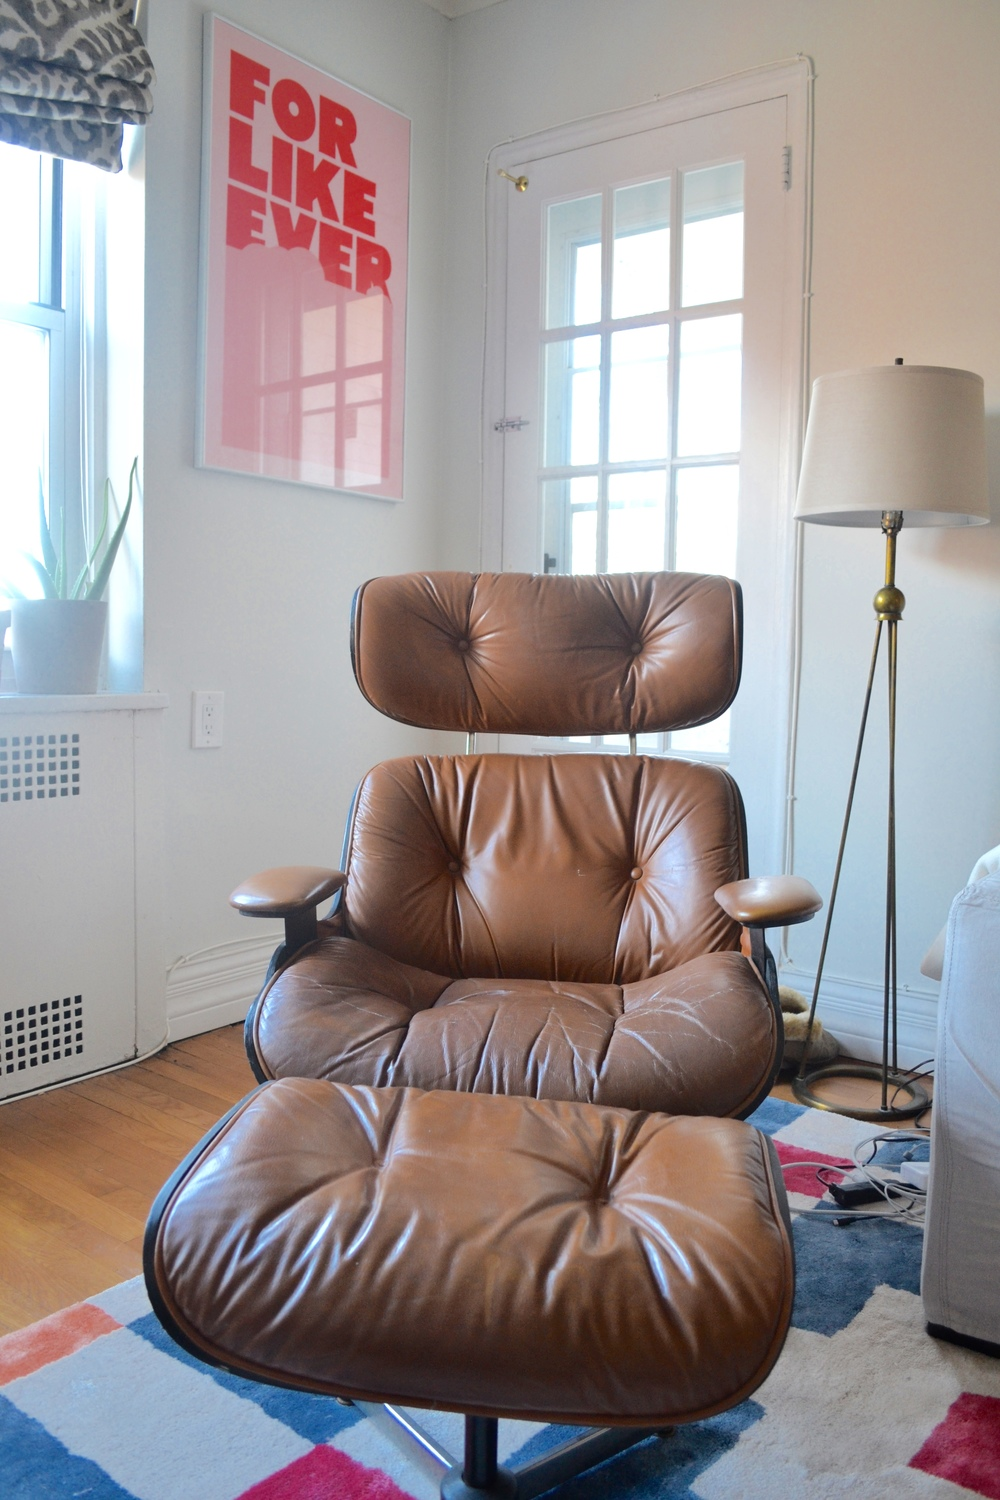 The leather Eames style Chair and Ottoman were a vintage find from Craigslist.